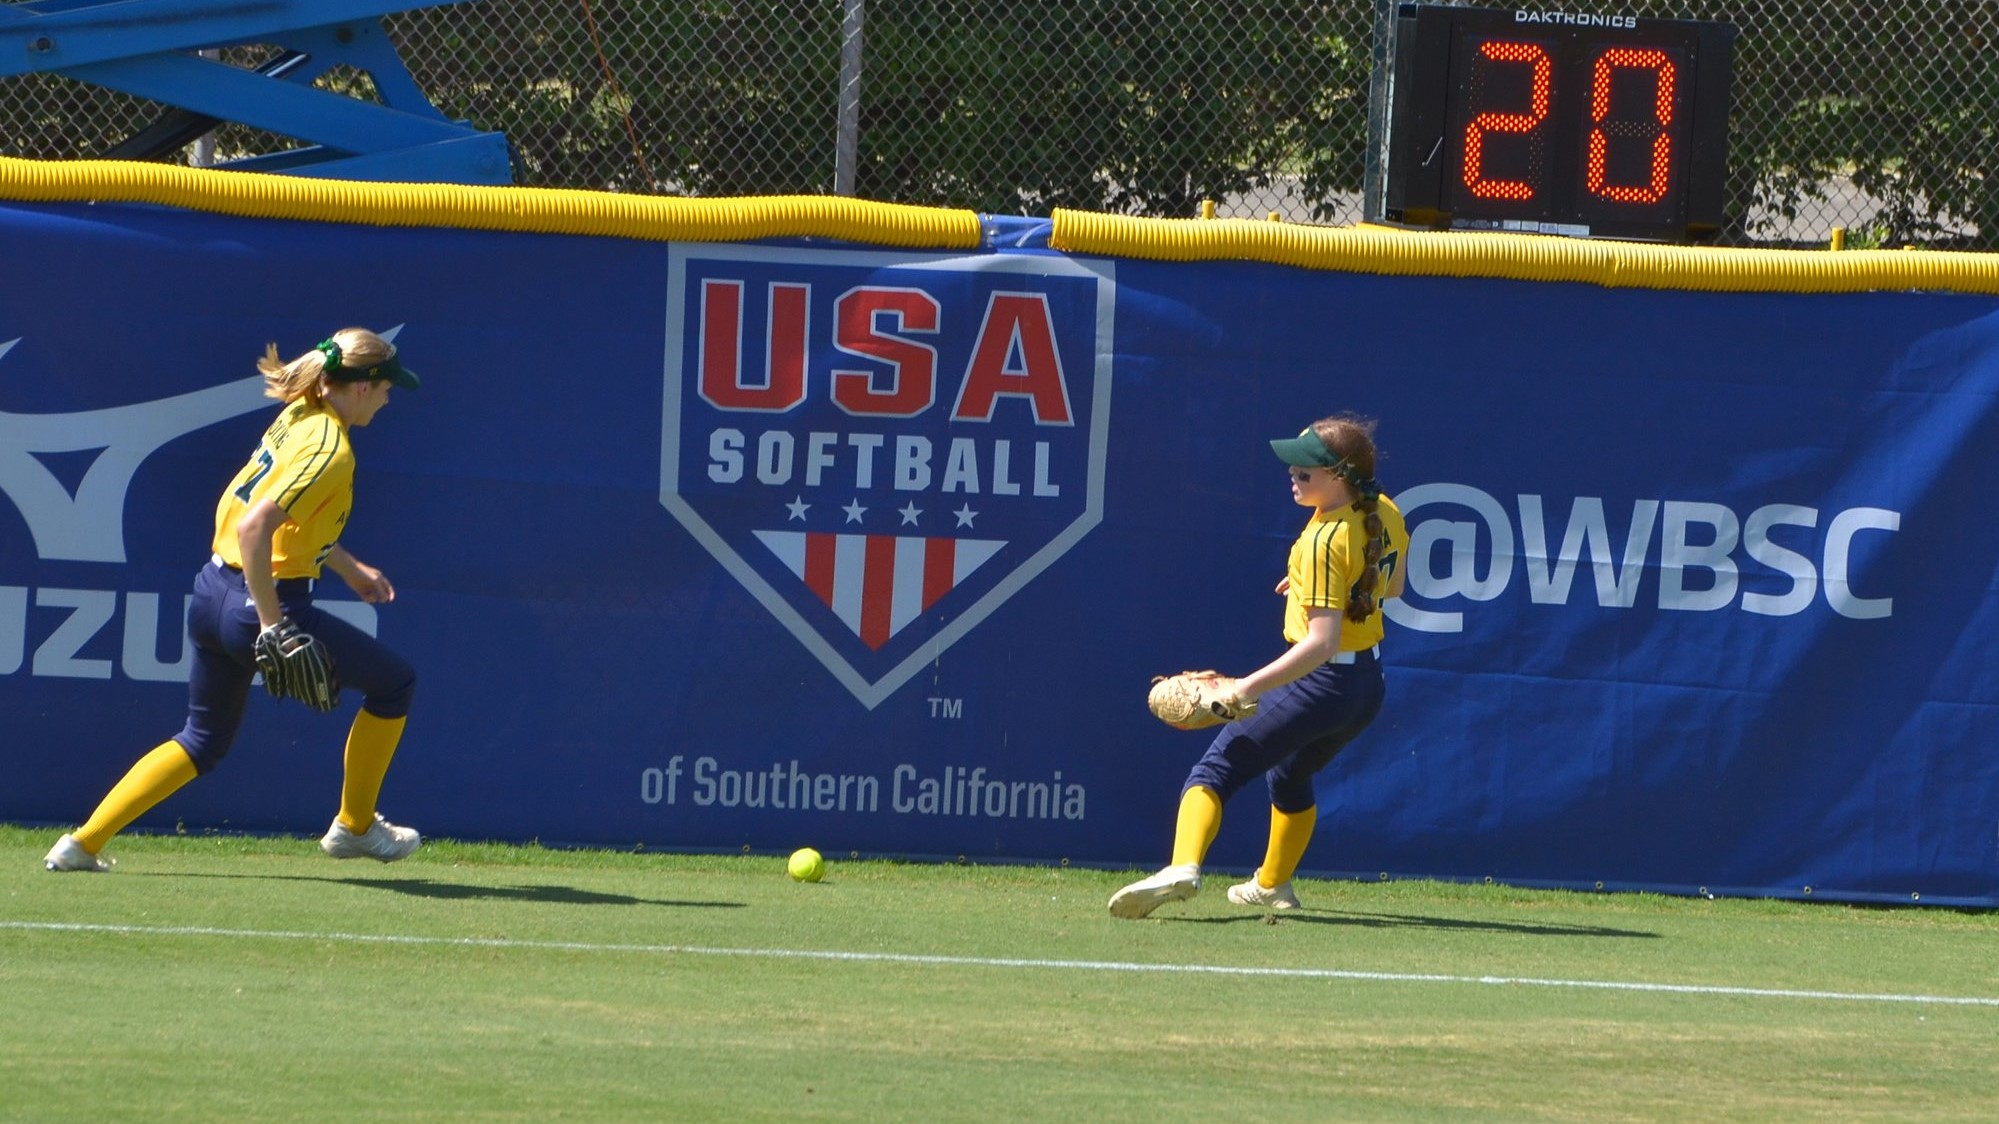 Australia's outfielders chasing the ball hit by Shiharashi in the second